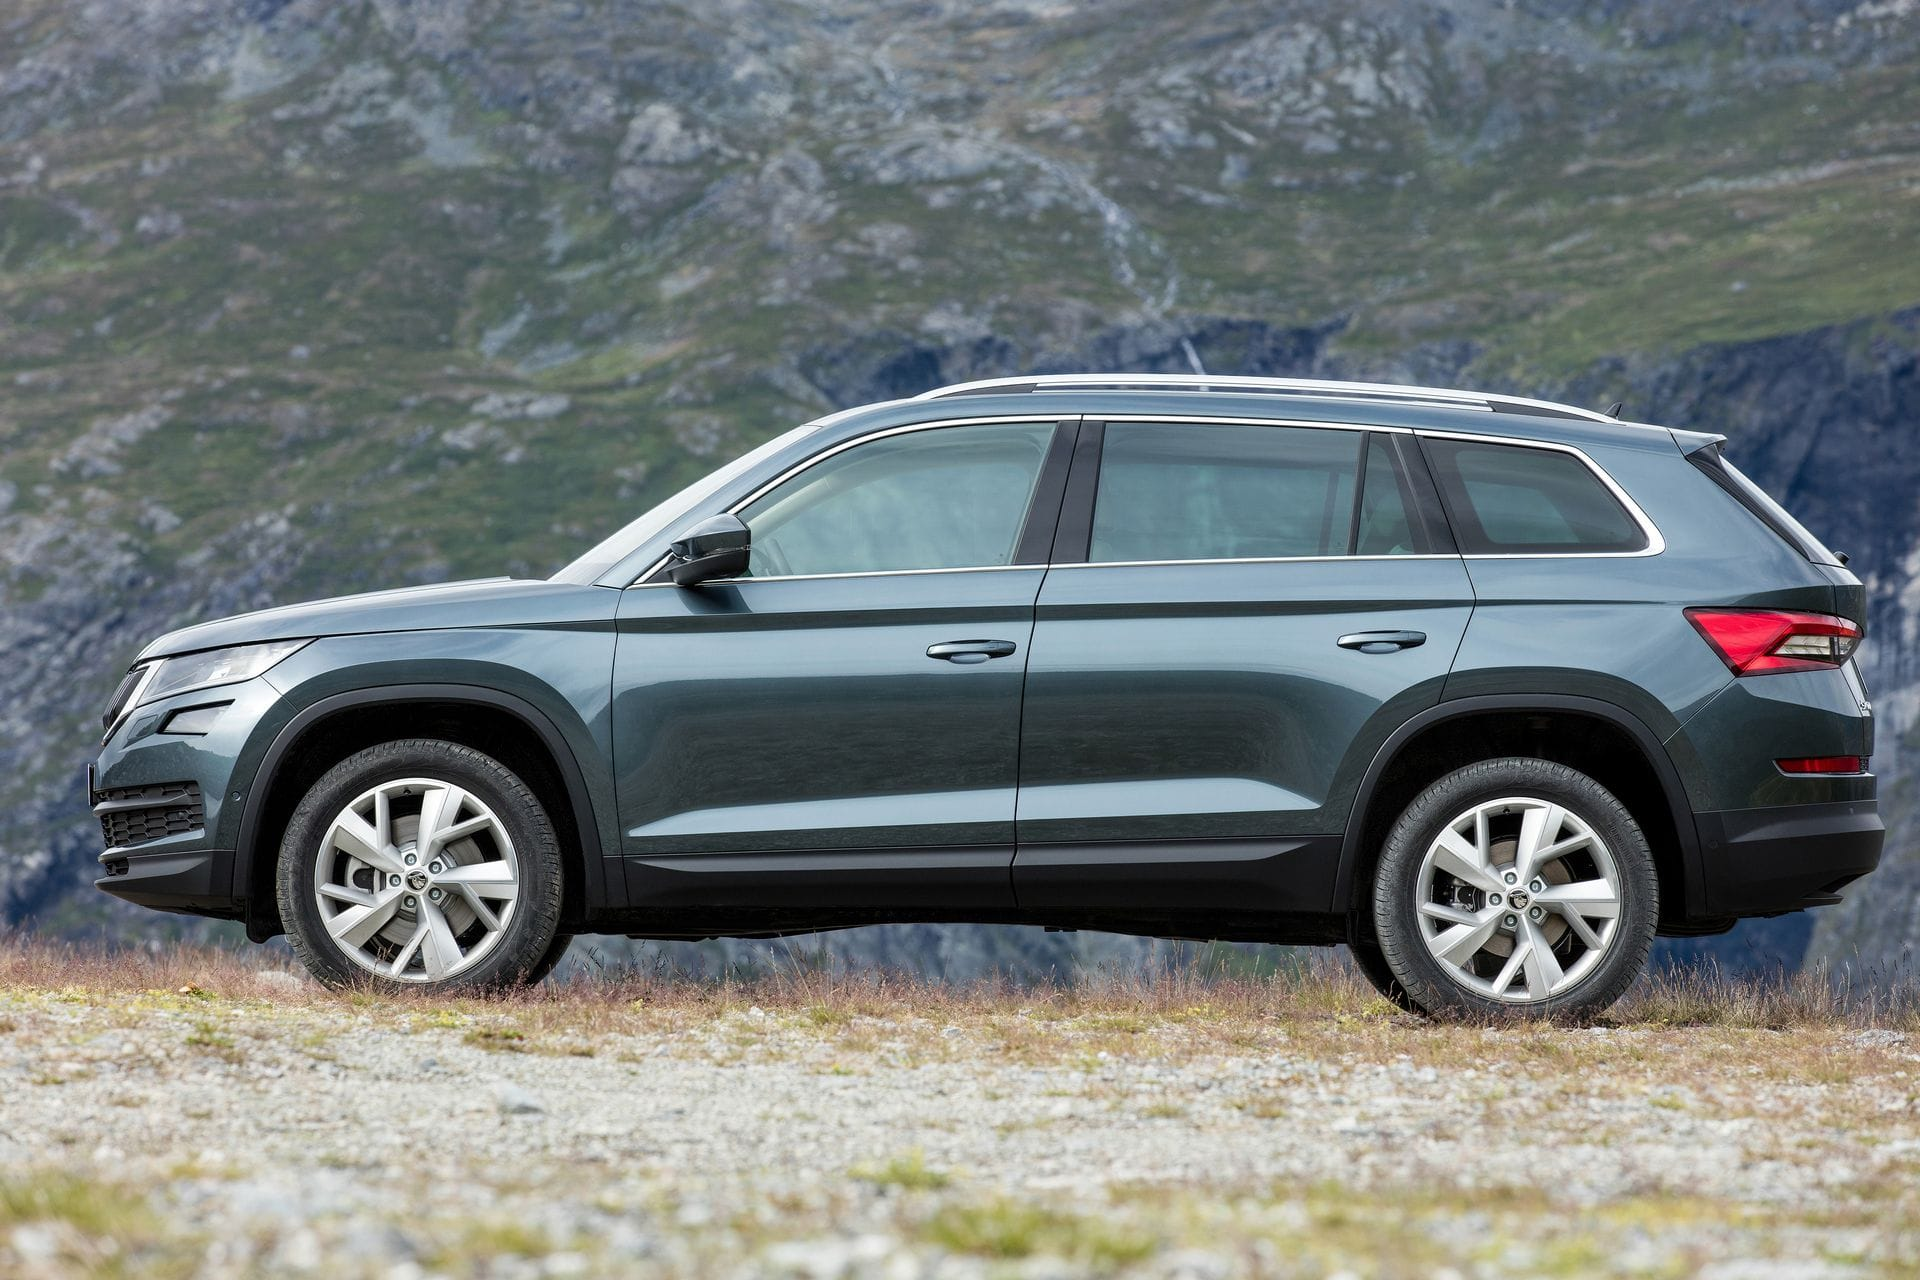 Skoda Kodiaq Full hd wallpapers